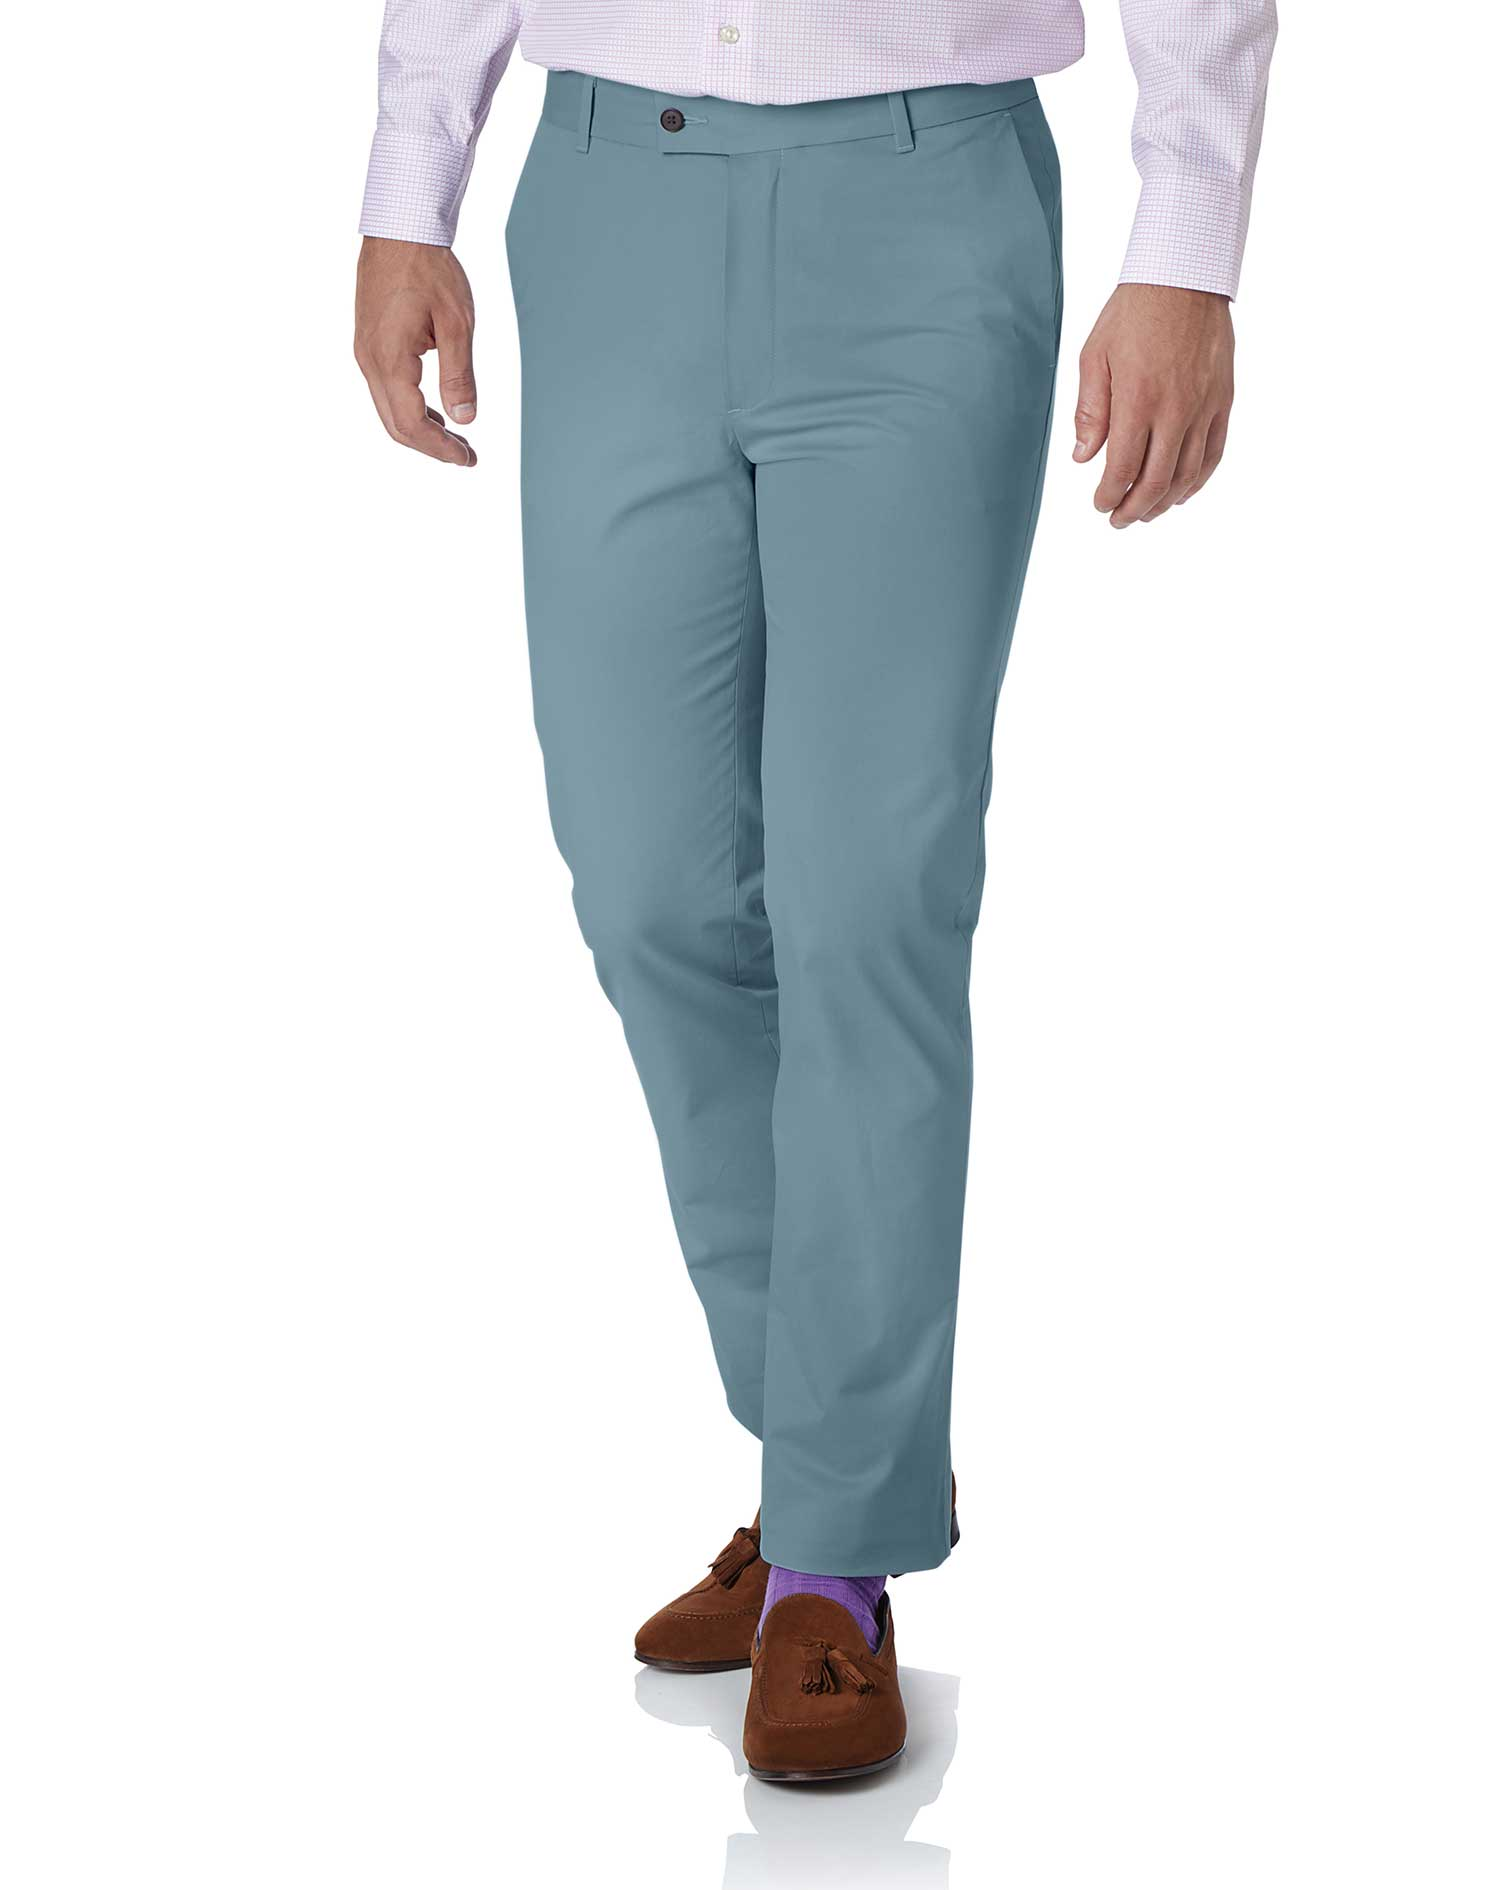 Sky Blue Slim Fit Stretch Cotton Chino Trousers Size W38 L30 by Charles Tyrwhitt